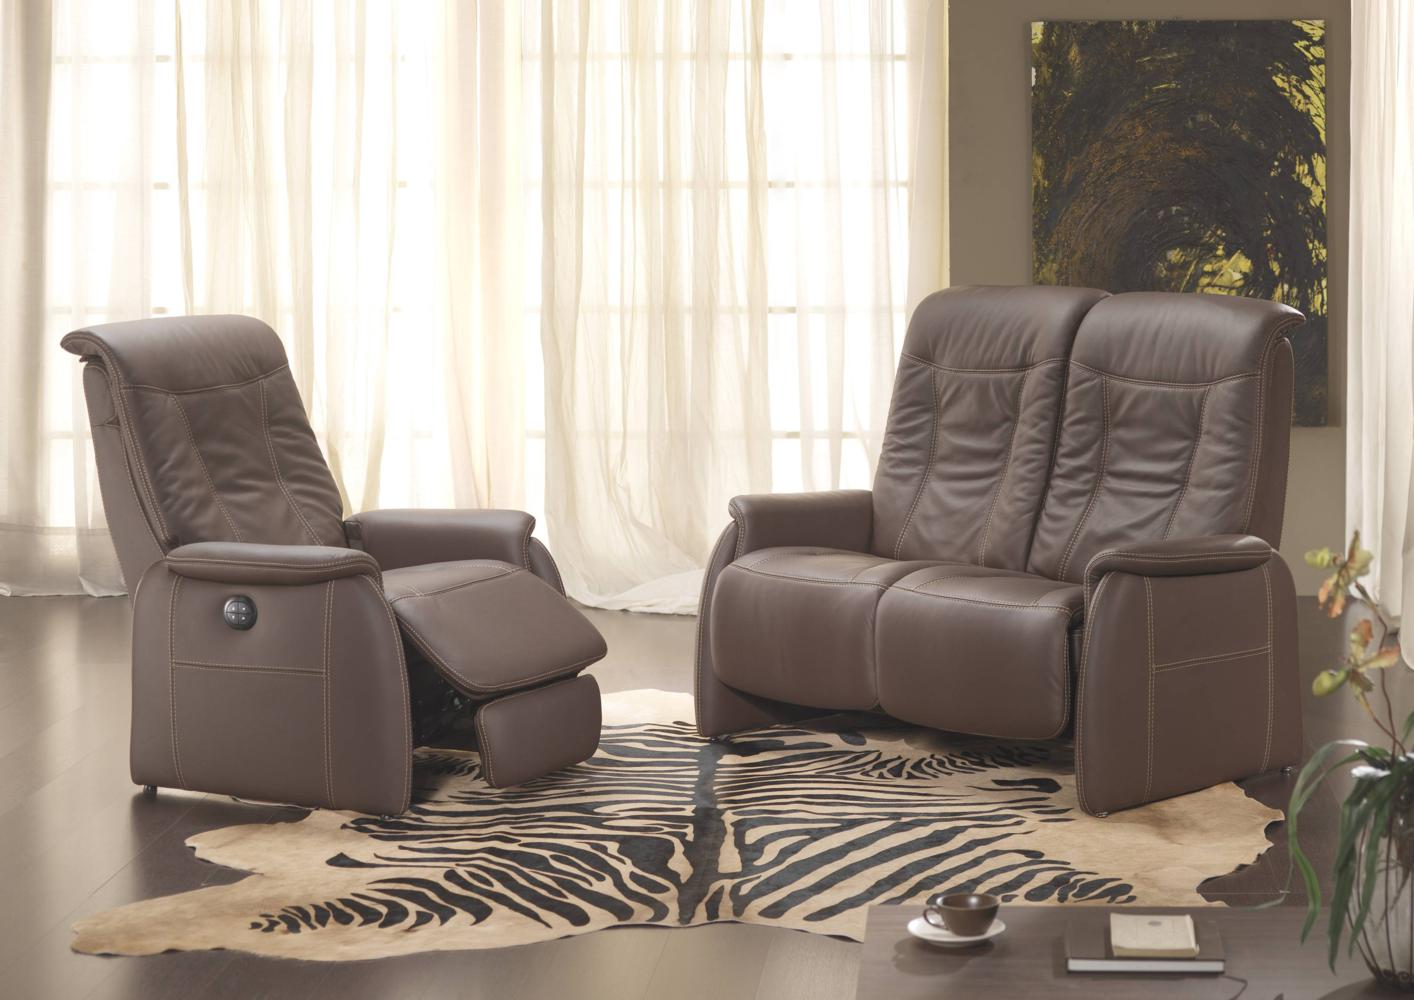 acheter votre fauteuil contemporain relax en cuir marron chez simeuble. Black Bedroom Furniture Sets. Home Design Ideas